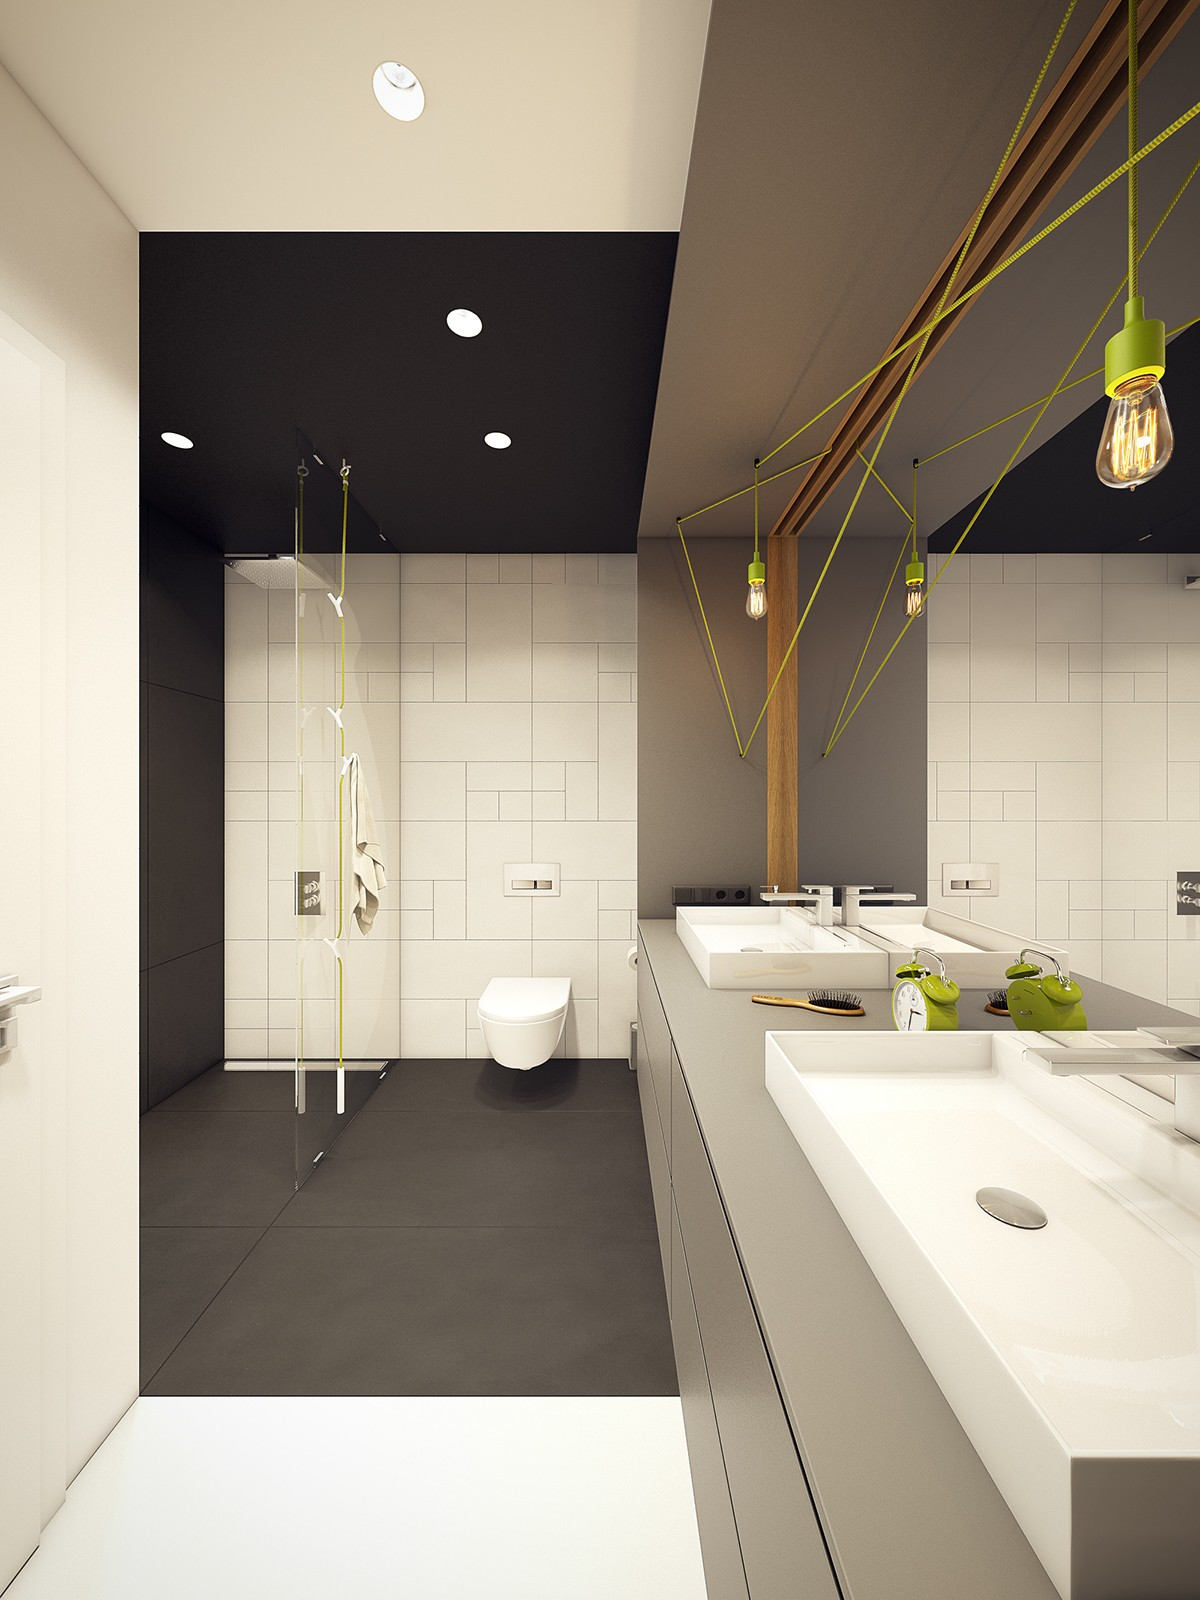 Lime Green And Black Bathroom Ideas - A modern scandinavian inspired apartment with ingenius features